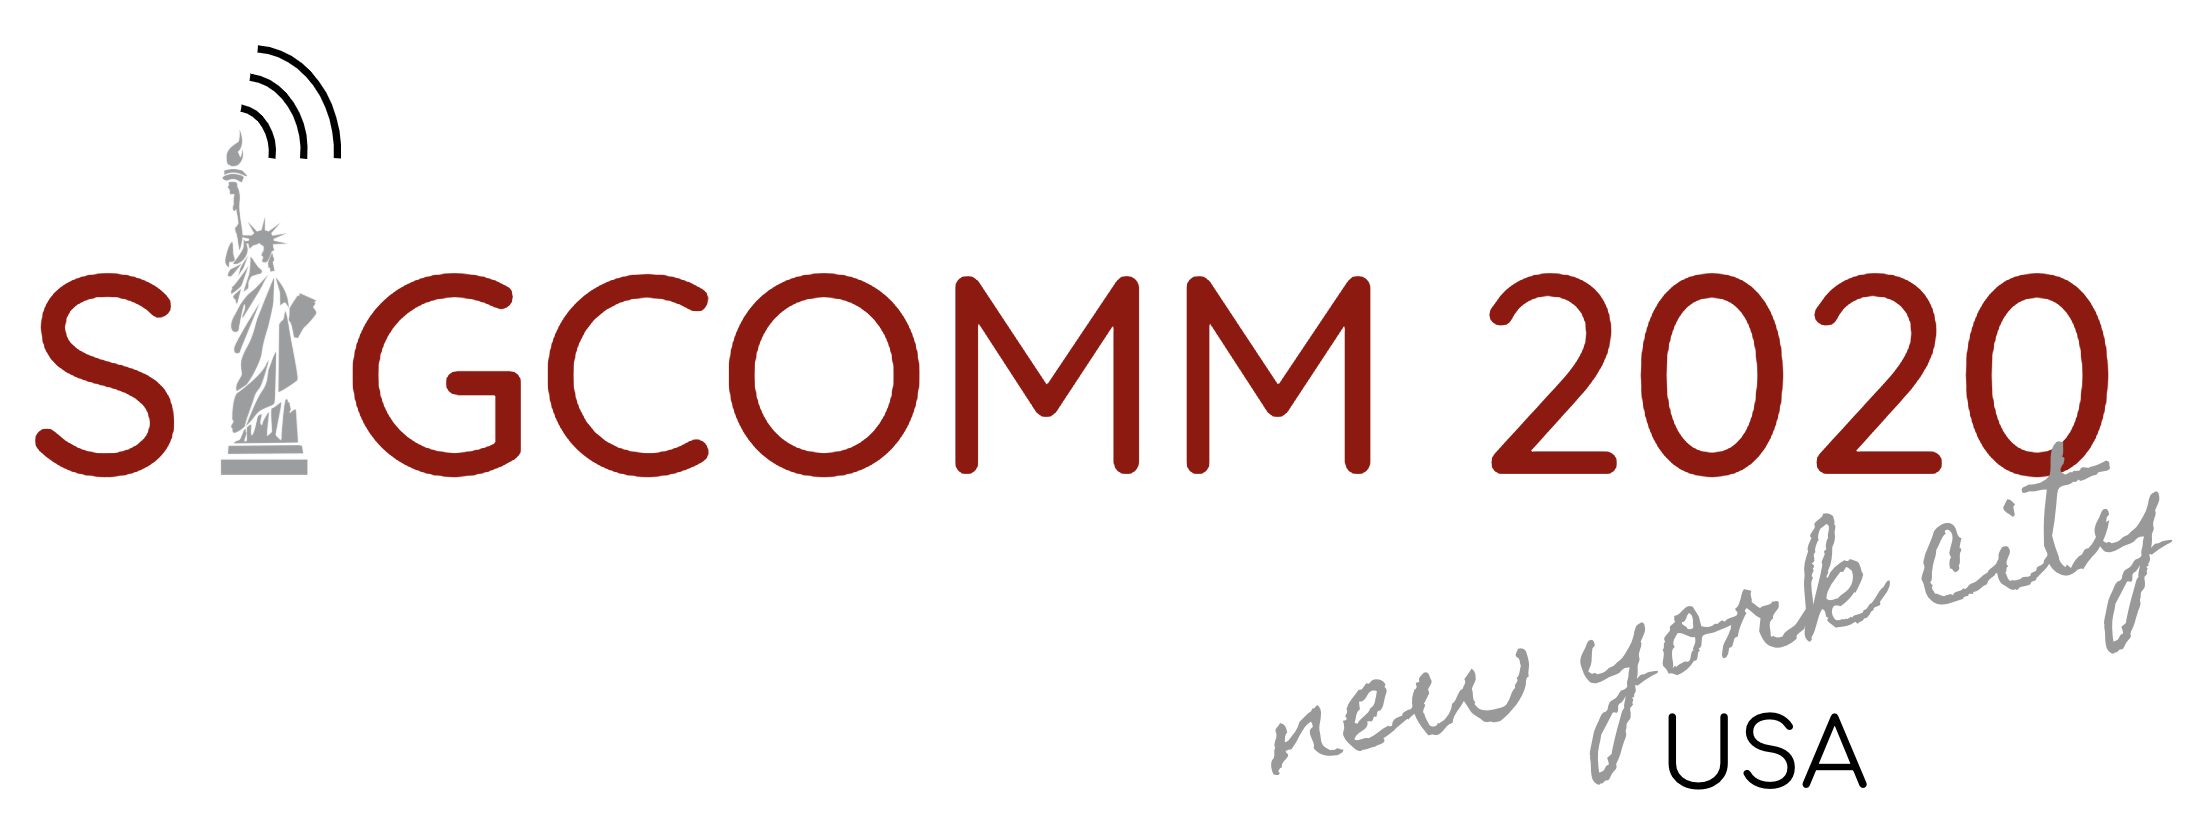 SIGCOMM 2020 (26th ACM Conference on Special Interest Group on Data Communication)